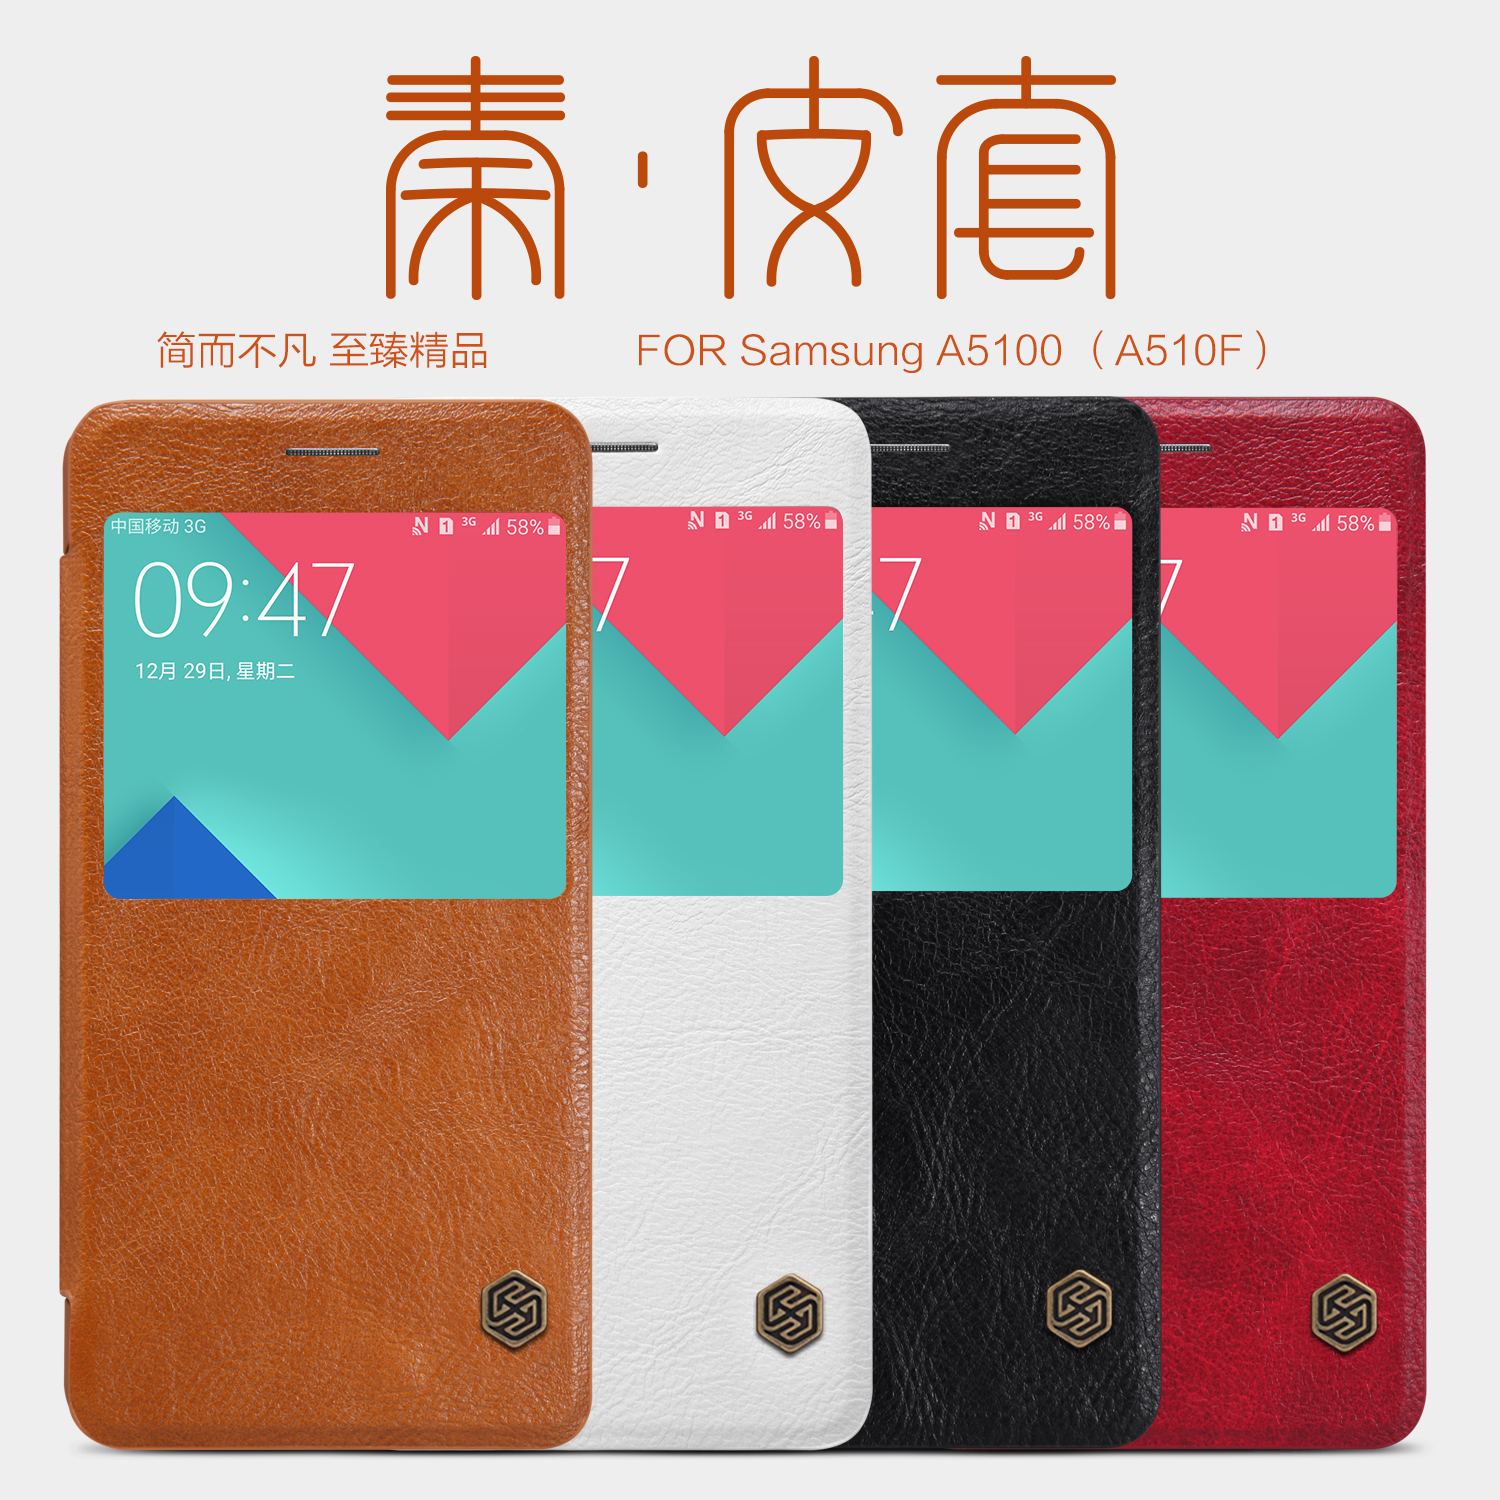 SM-A510F A5108 a5100 samsung mobile phone shell protective sleeve leather holster business version 2016 full netcom it is true a56